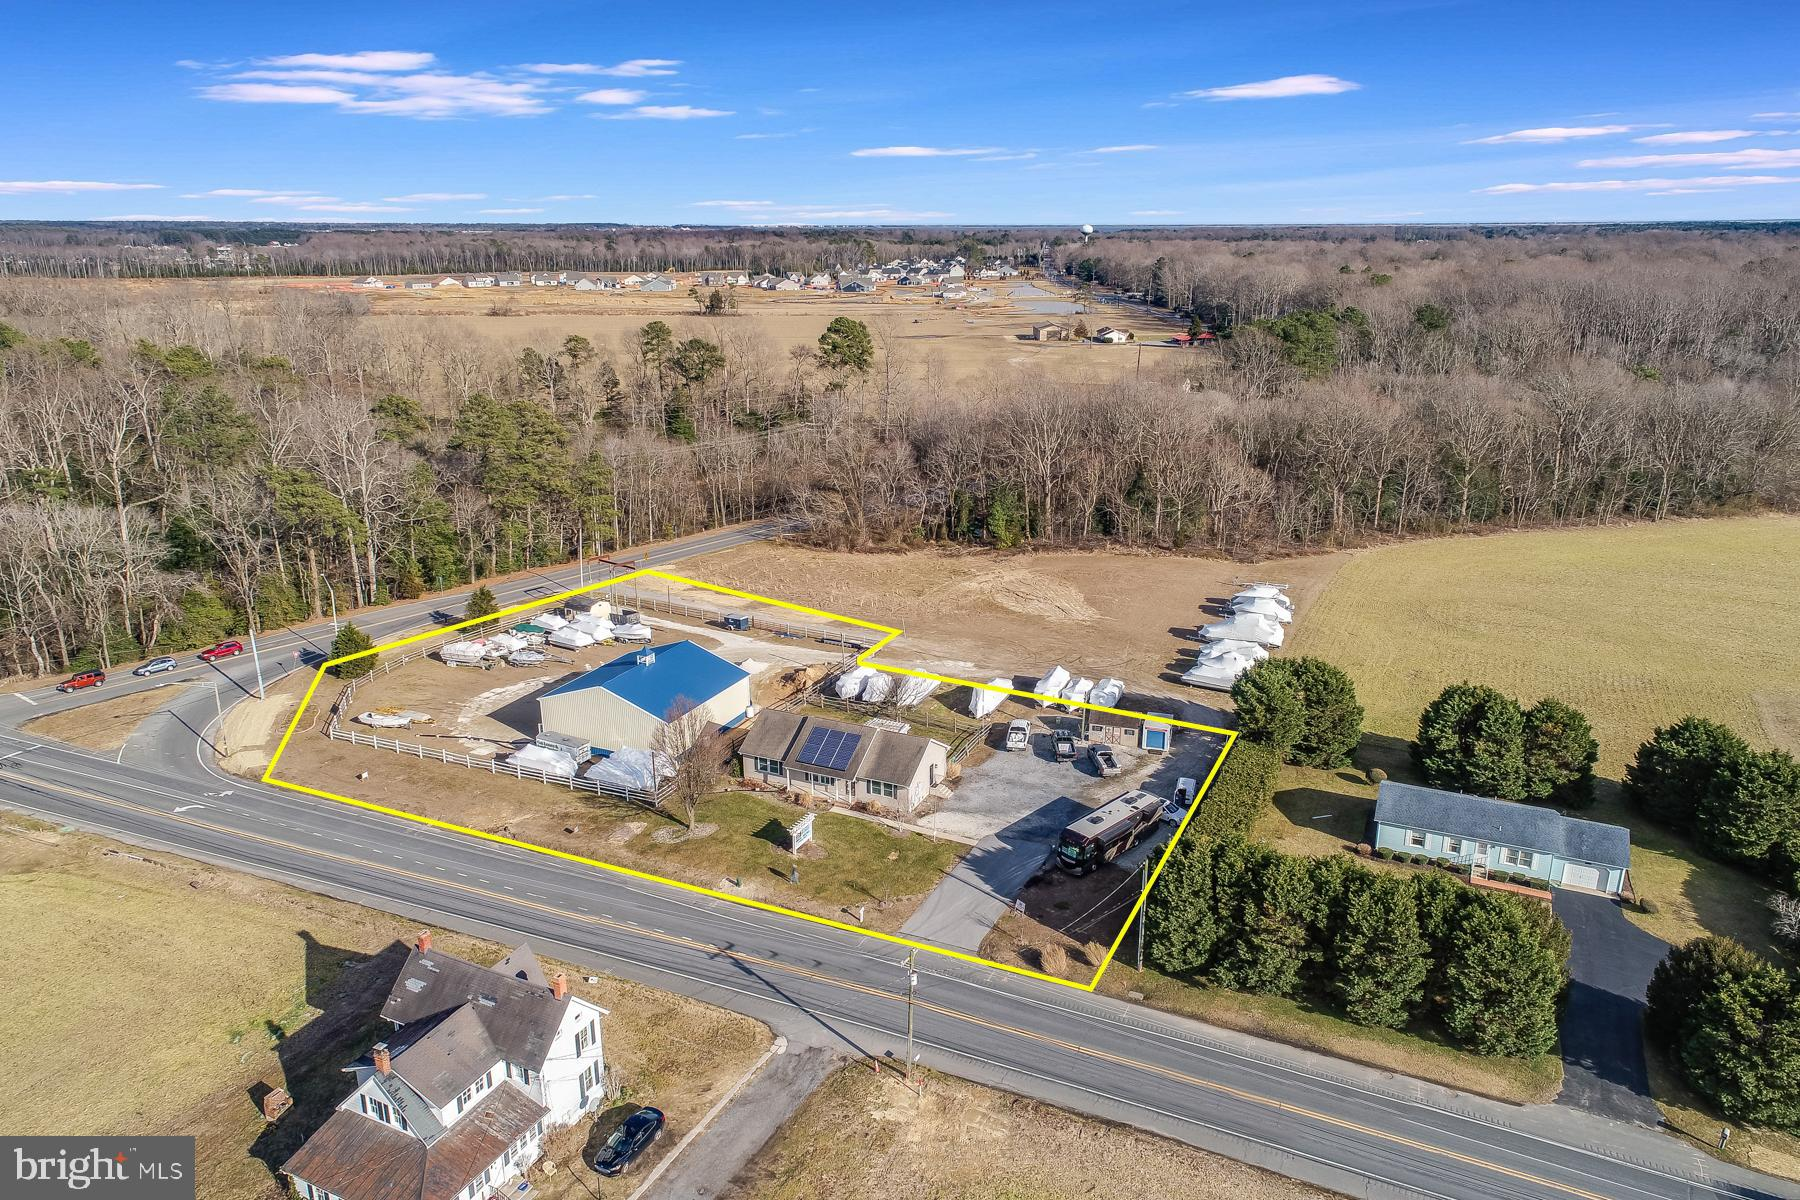 Rare Opportunity - approximately 1.5 acres zoned for conditional use at corner of John J. Williams Highway and Angola Road in Lewes!  Home or office located on 1/2 acre parcel features 3 bedrooms, 2 baths, hardwood flooring, solar panels, back deck, & more.  1 Acre parcel next door has a 50 x 50 pole barn.  1.5 acres is zoned AR-1 but has conditional use to operate businesses related to grass cutting, power washing, marine services and sales, and construction services.   Many opportunities to work from home, operate your business, or seek commercial zoning for another use!